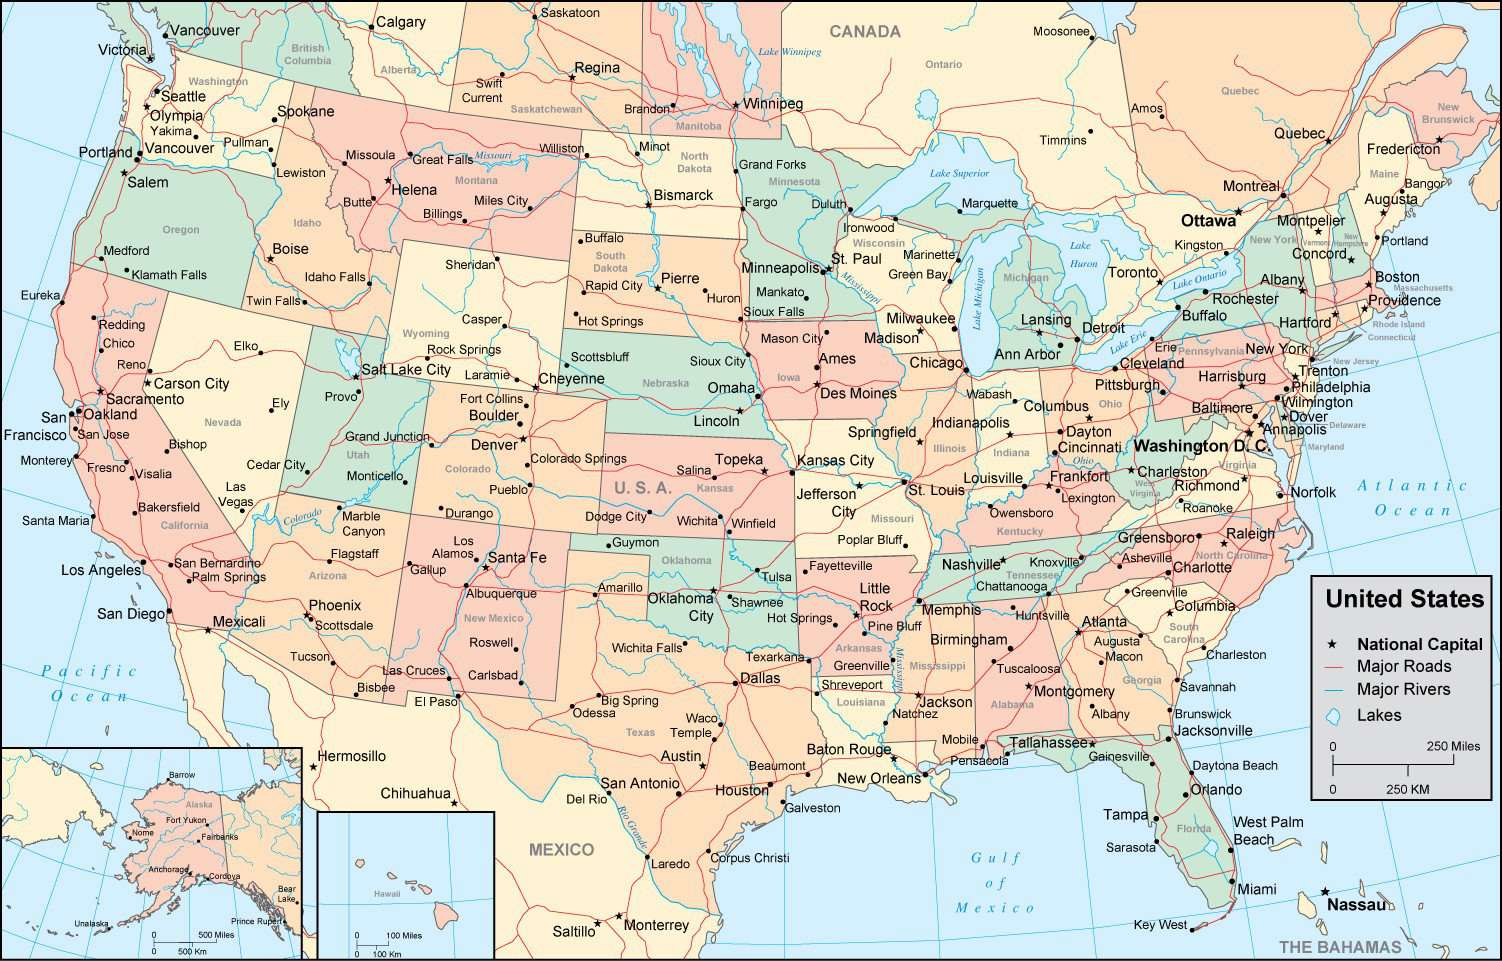 USA Map with States and Canadian Provinces Usa Map Countries Border on countries border belize, countries border bangladesh, countries border brazil, countries border armenia, countries border venezuela, countries border paraguay, countries border croatia, countries border guatemala, countries border thailand, countries border ireland, countries border argentina, countries border bhutan, countries border israel, countries border europe, countries border czech republic, countries border france, countries border lebanon, countries border portugal, countries border colombia, countries border ethiopia,